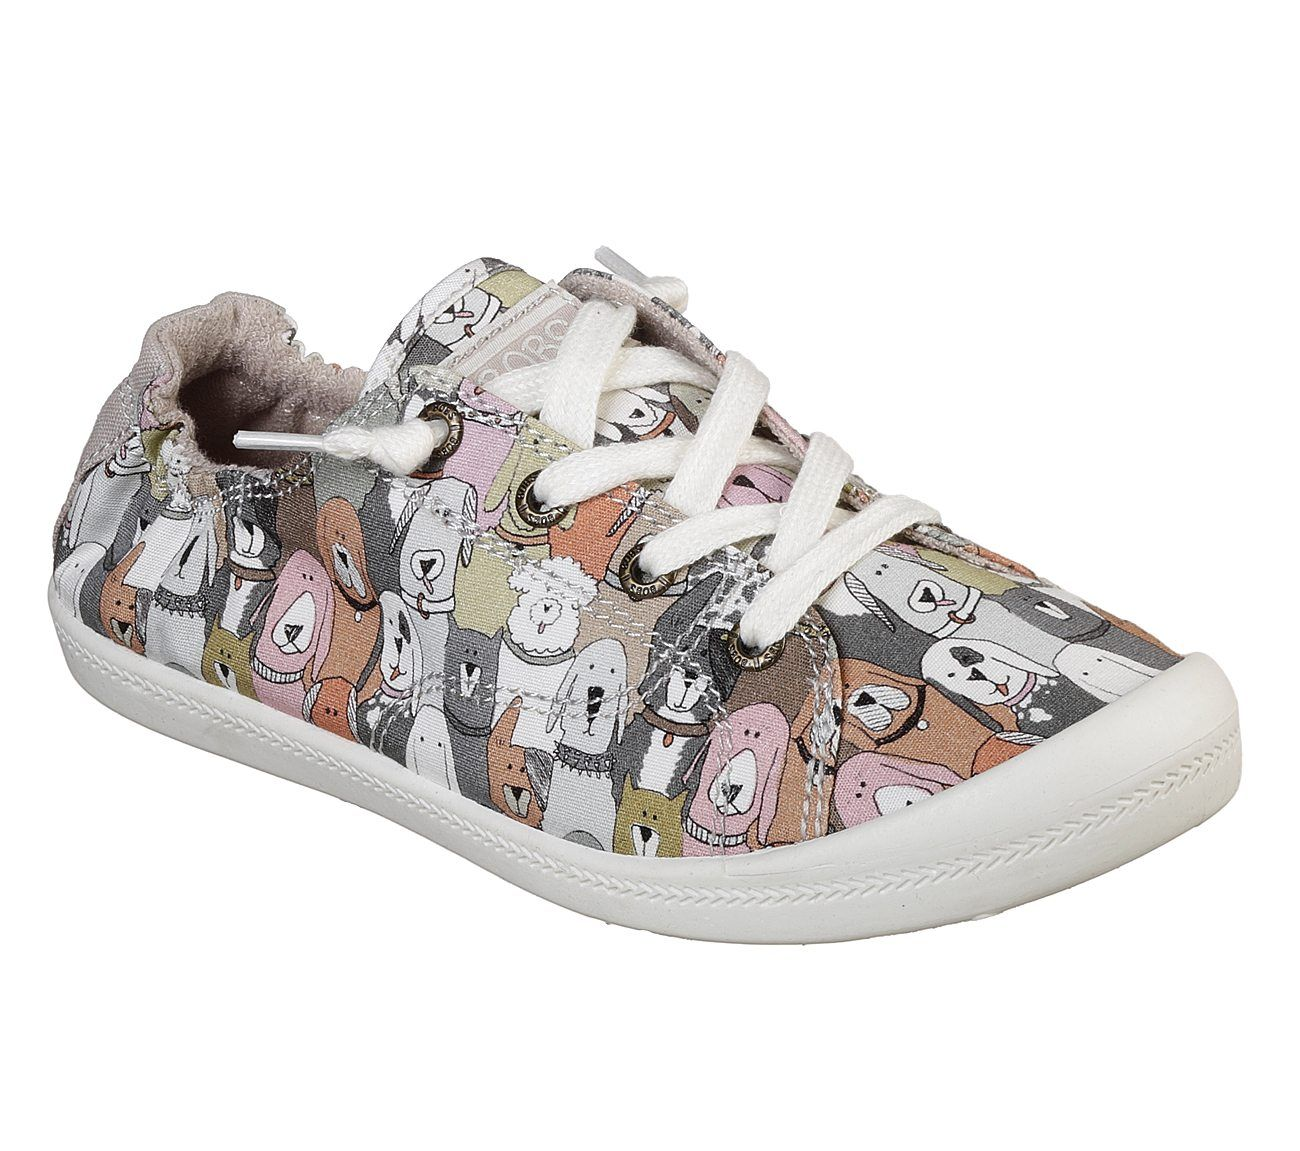 Buy Skechers Bobs Beach Bingo Dog House Party Bobs Shoes Only